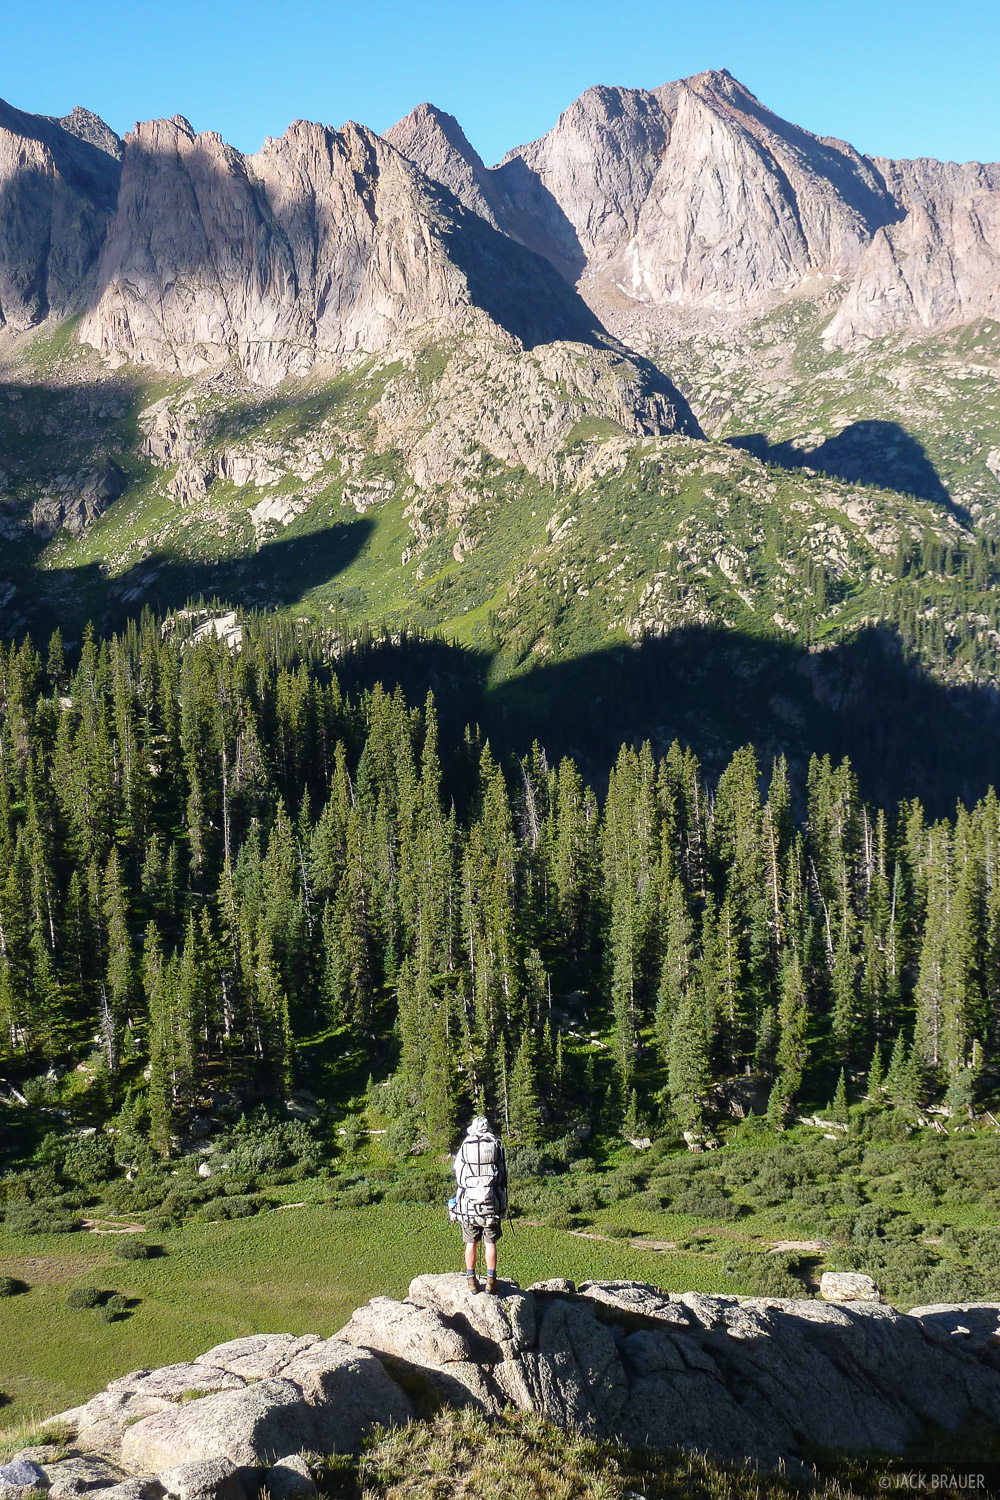 Colorado, Jack, Needle Mountains, San Juan Mountains, Weminuche Wilderness, Eolus, photo